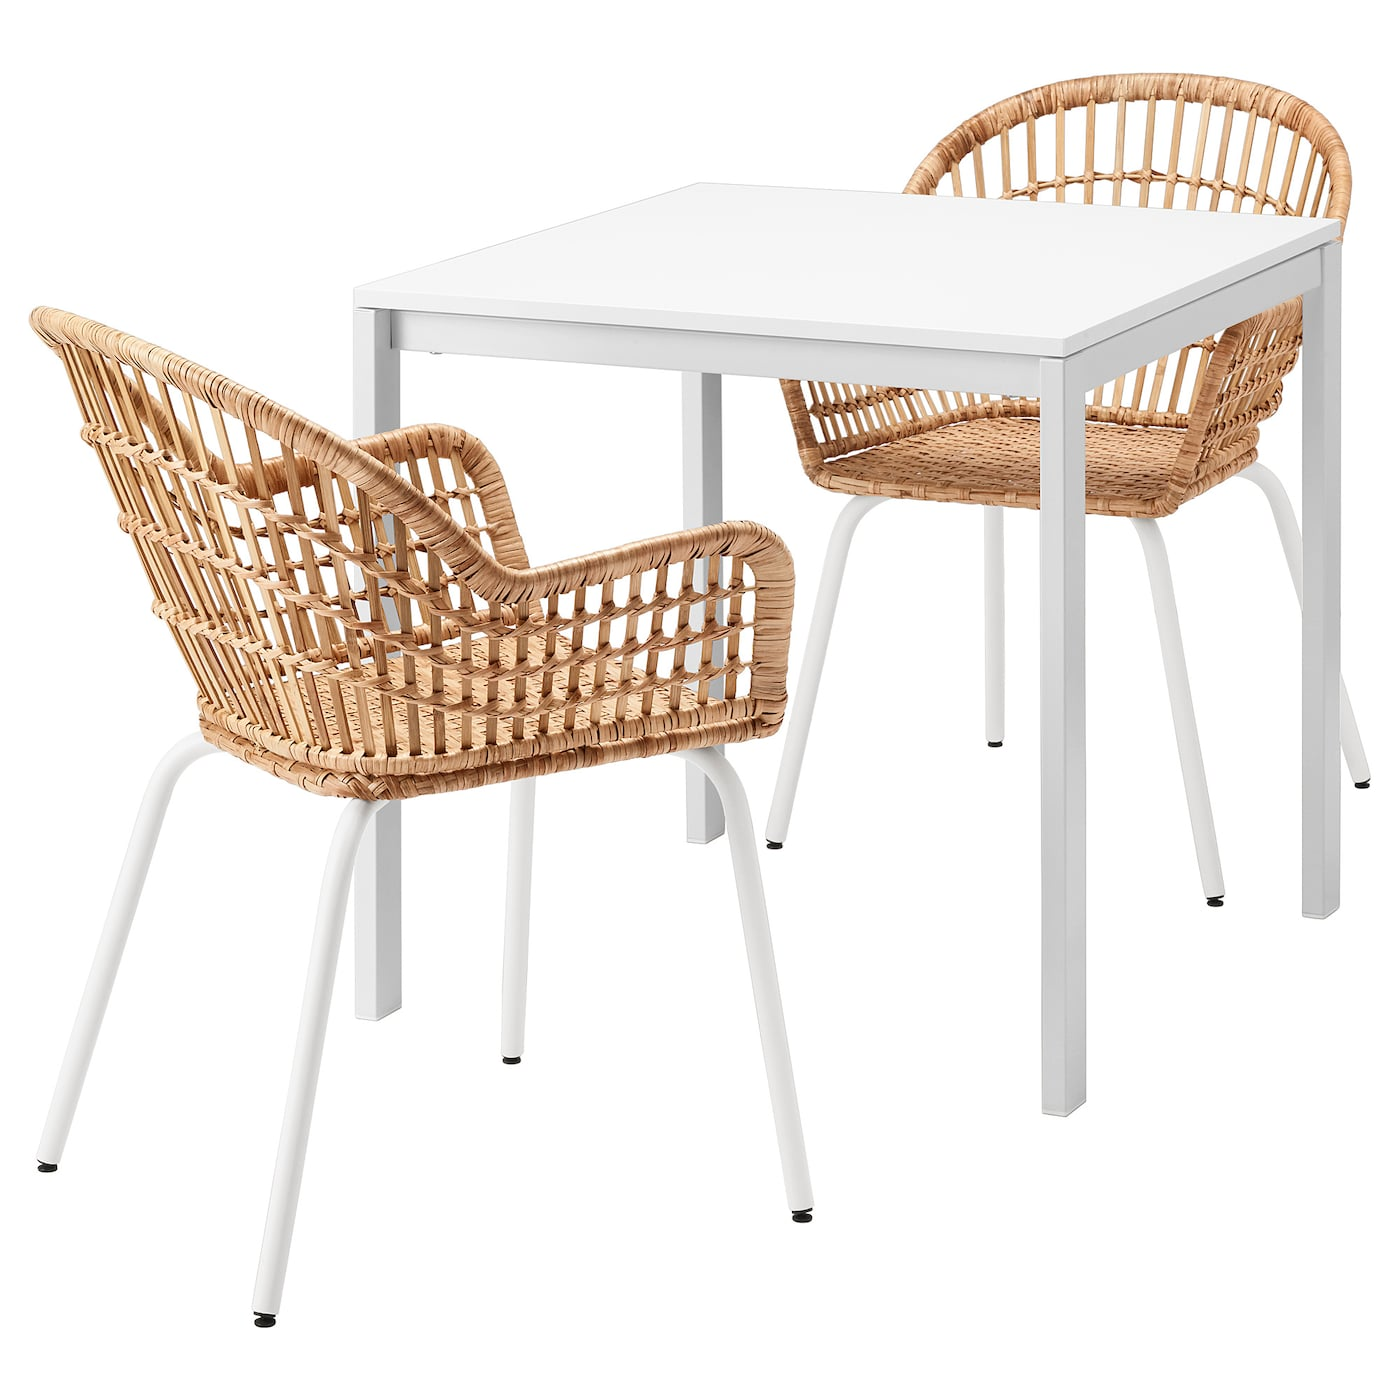 orp-nilsove-table-and-2-chairs-white-rattan-white__0720680_PE732746_S5